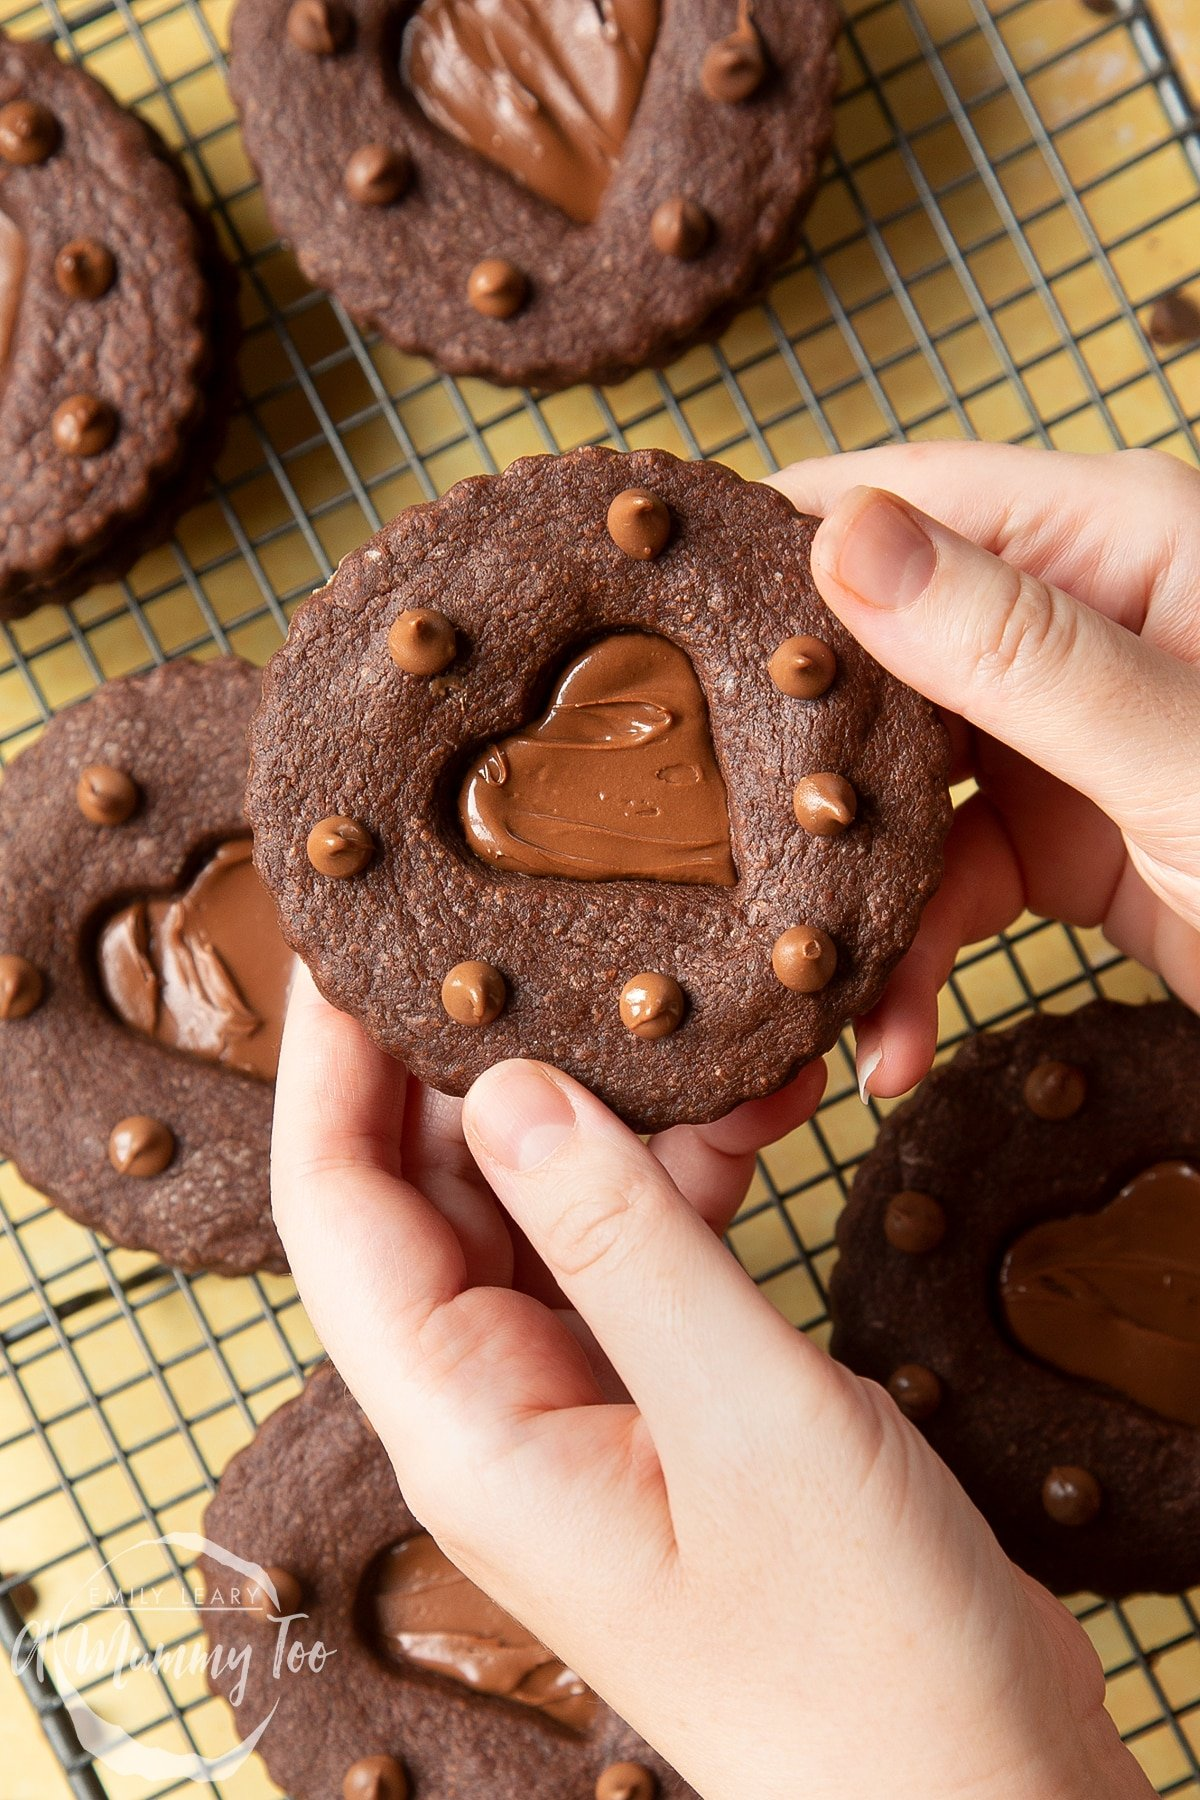 Two hands holding a Nutella sandwich cookie.